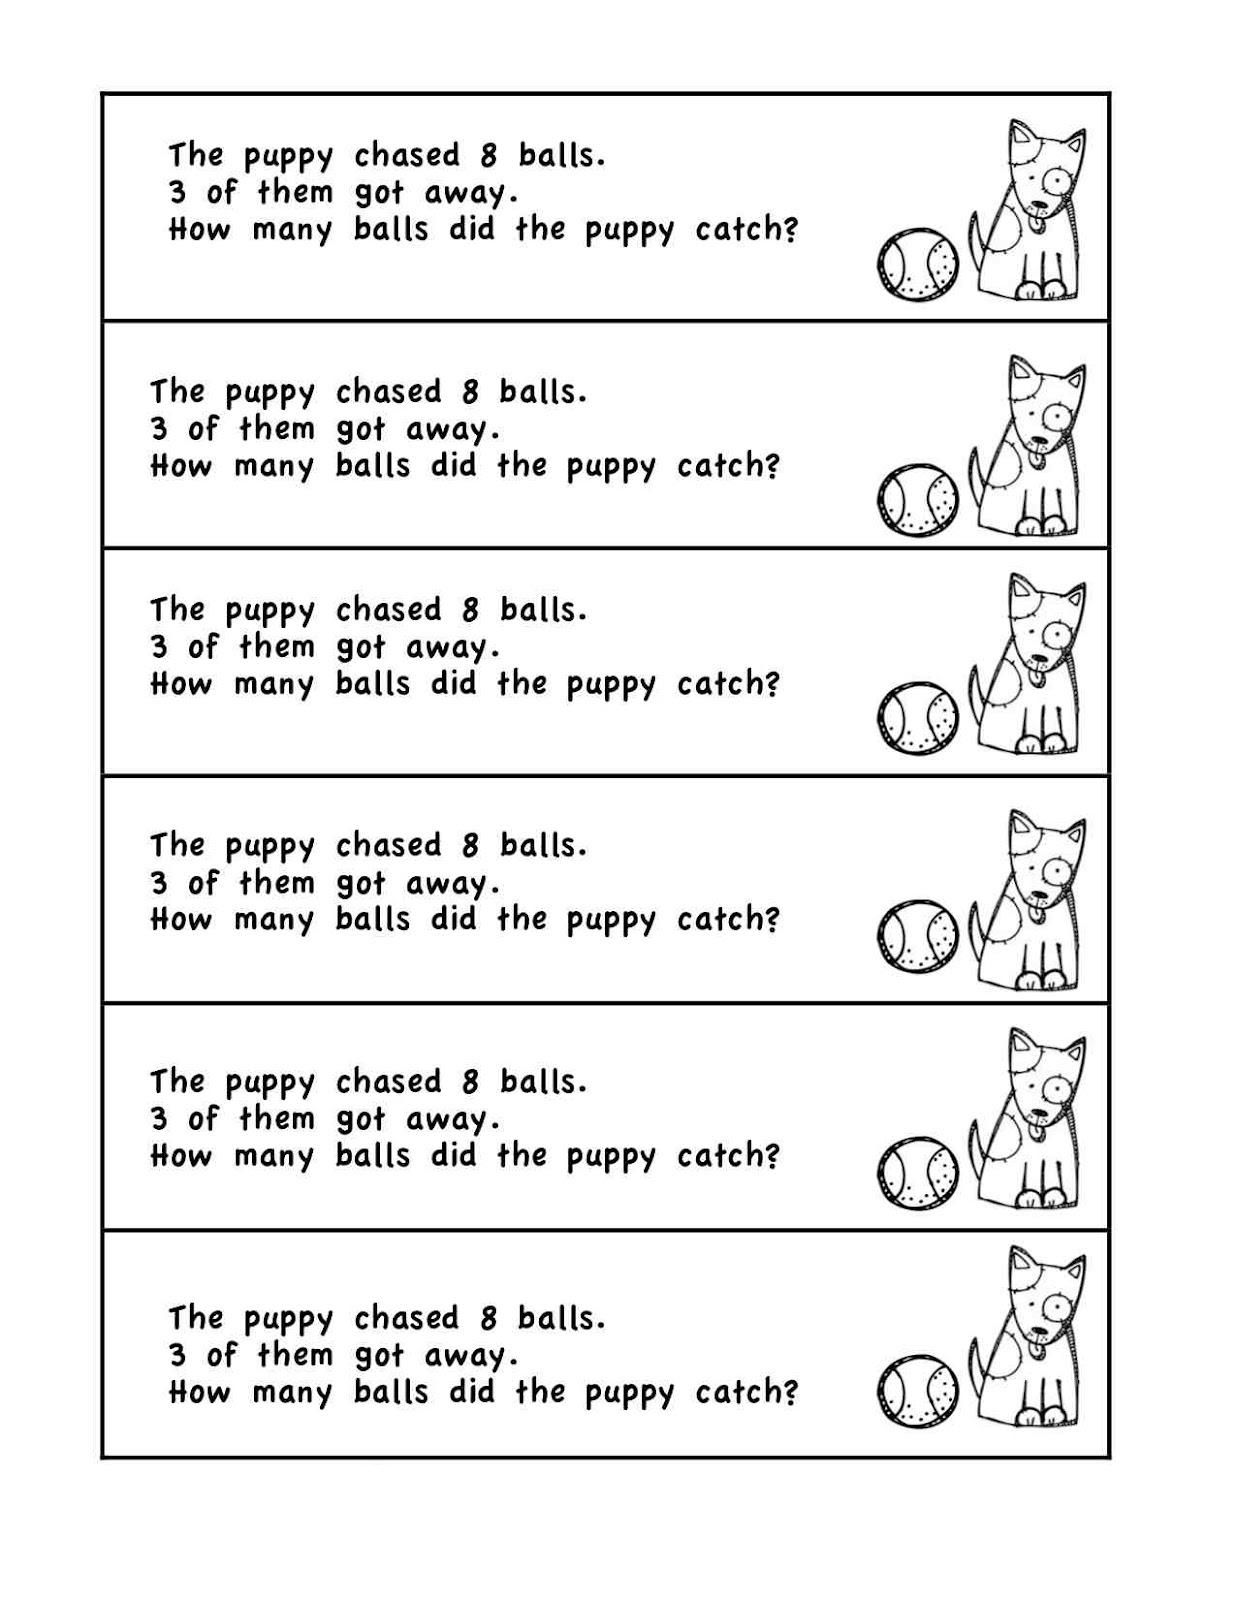 Kindergarten Word Problem Worksheets kindergarten worksheets – Kindergarten Word Problems Worksheets